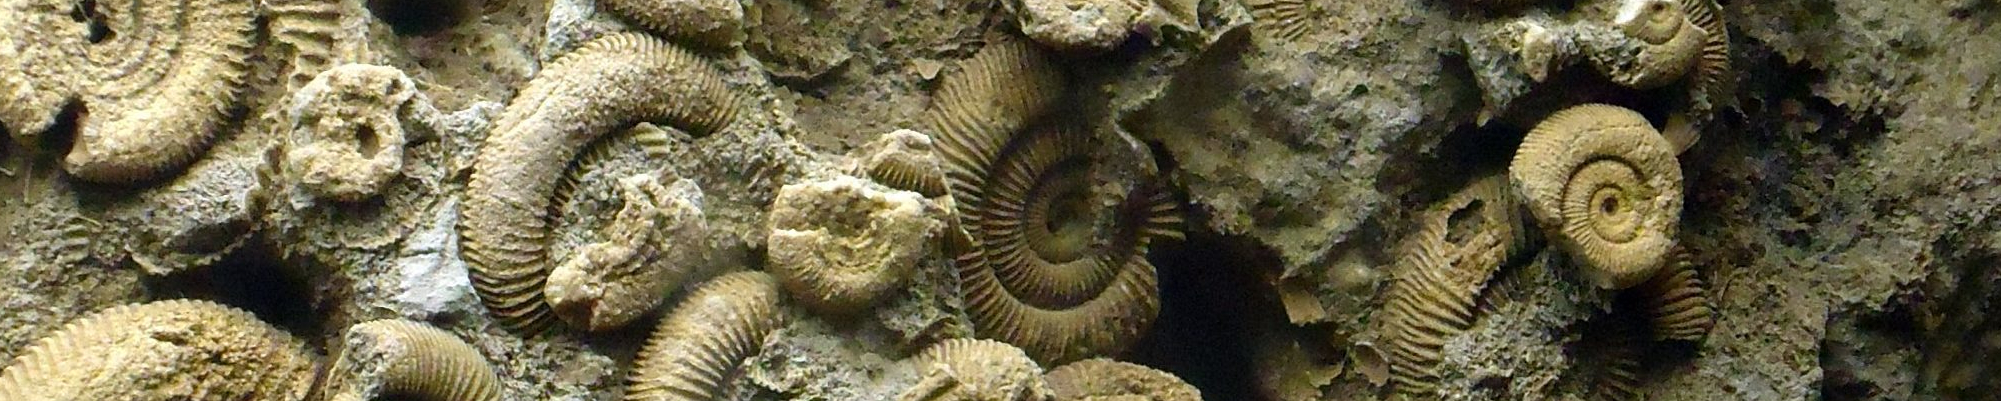 small ammonites rock